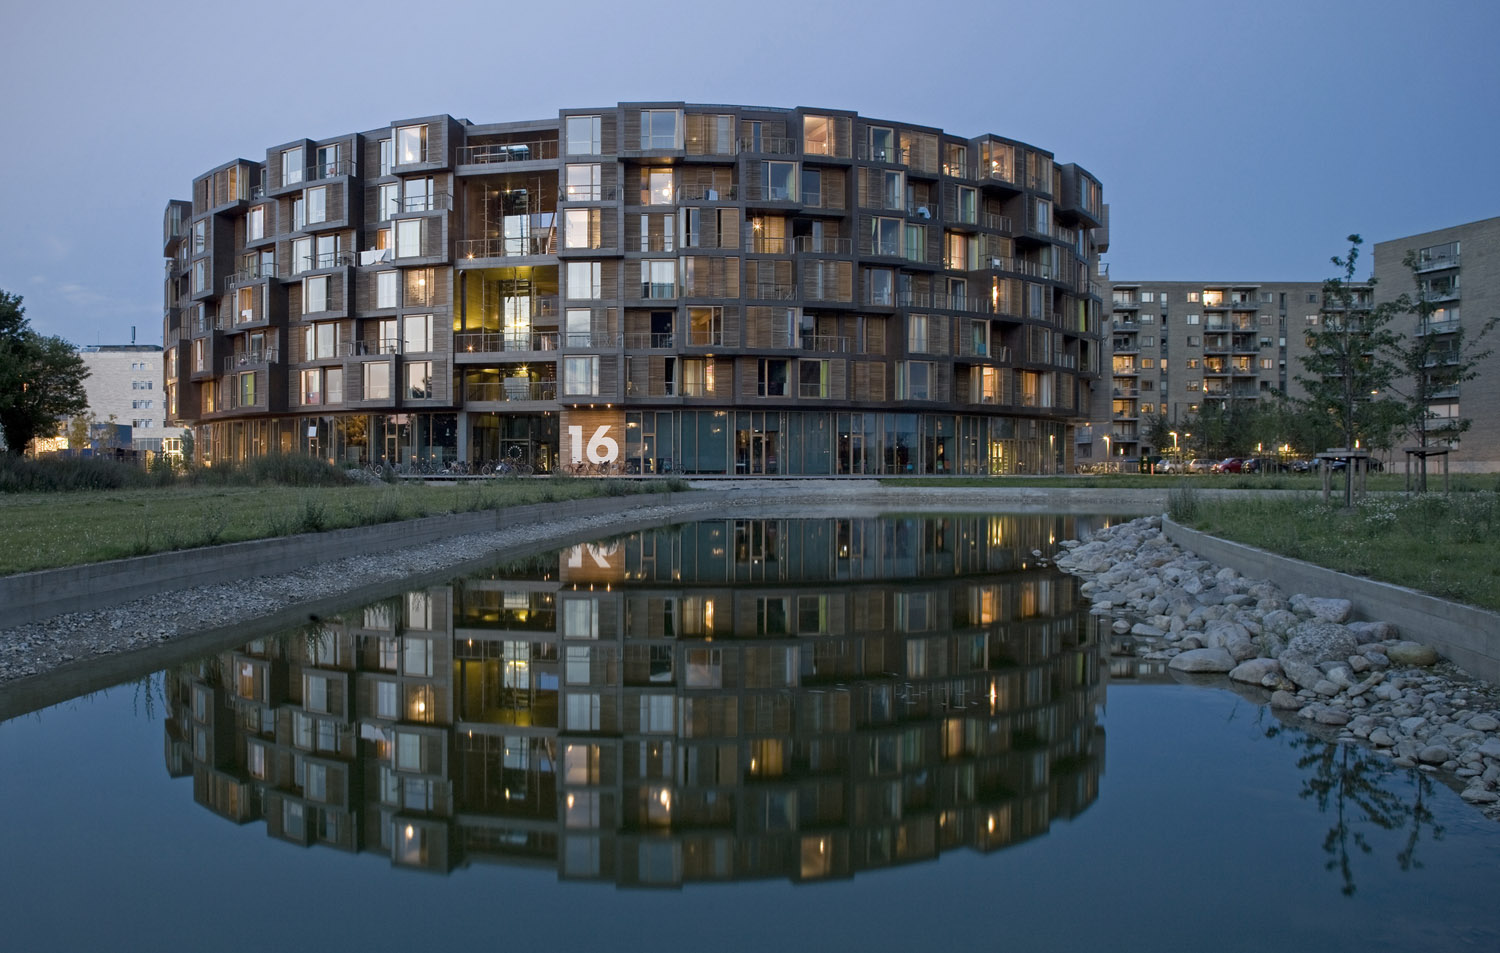 Tietgen Dormitory design by Lundgaard & Tranberg Architects